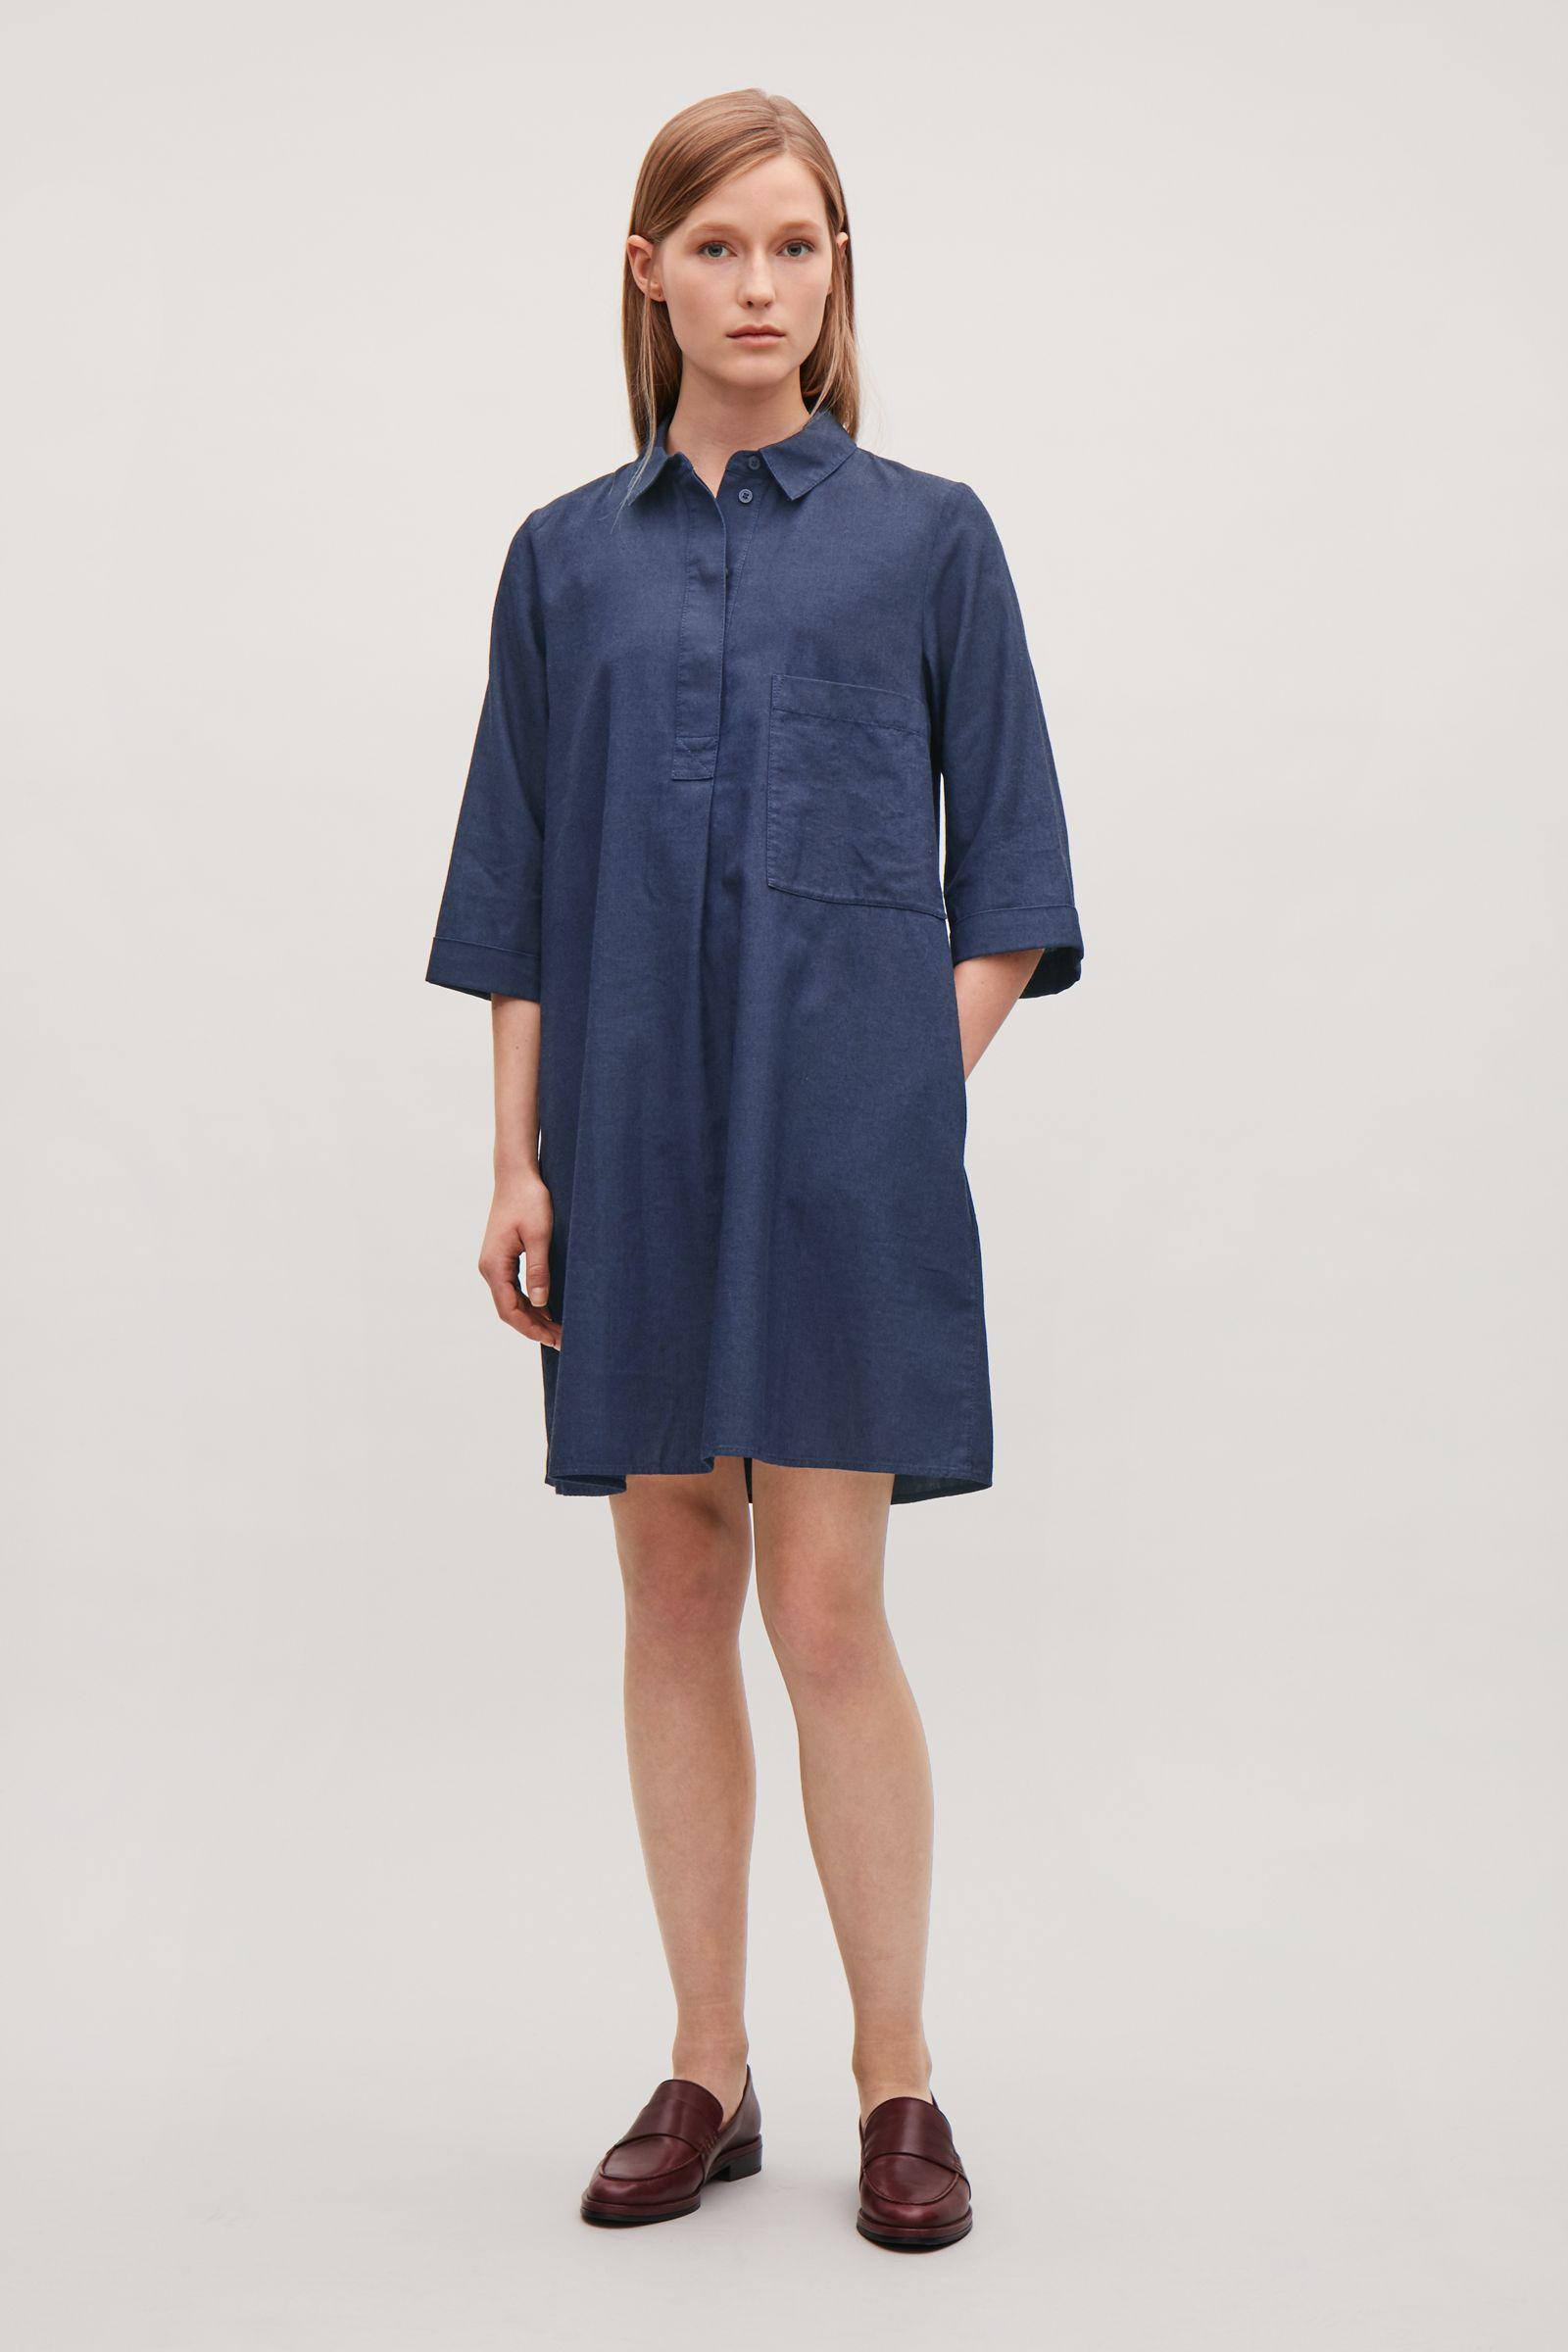 b259848429 Gallery. Previously sold at  COS · Women s Denim Dresses Women s Shirt ...